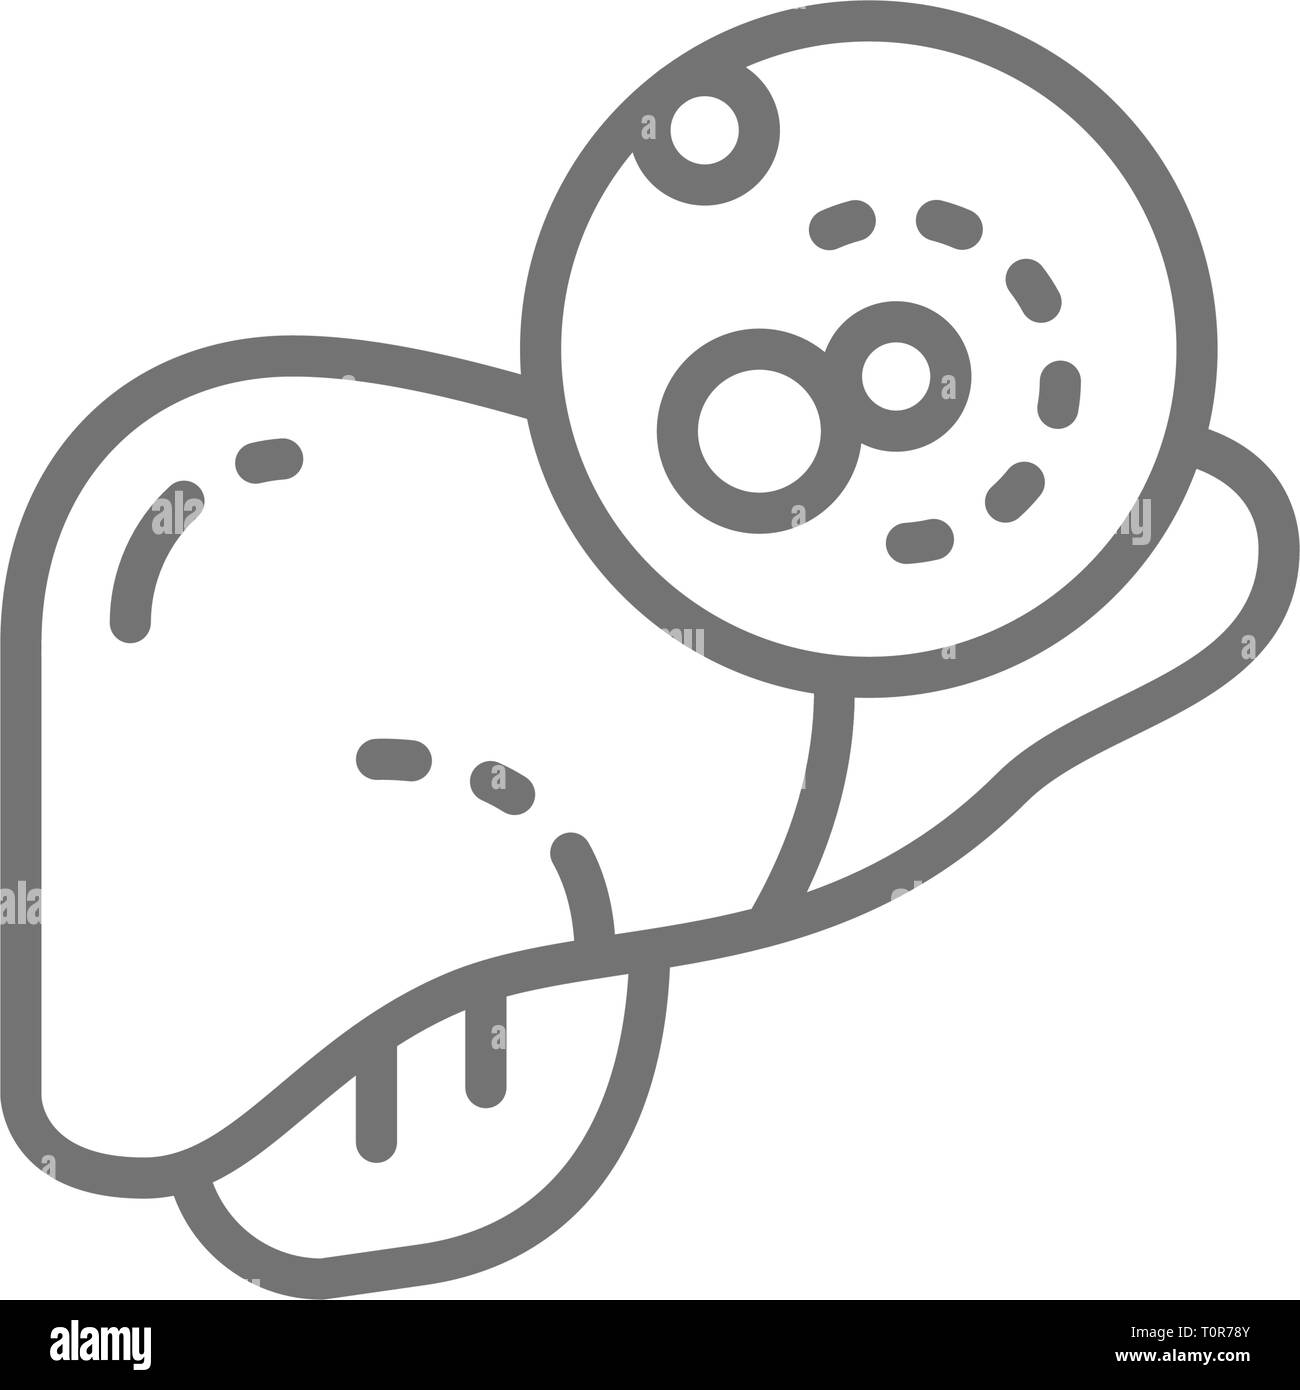 Liver cancer, malignant tumor, oncology line icon. - Stock Image